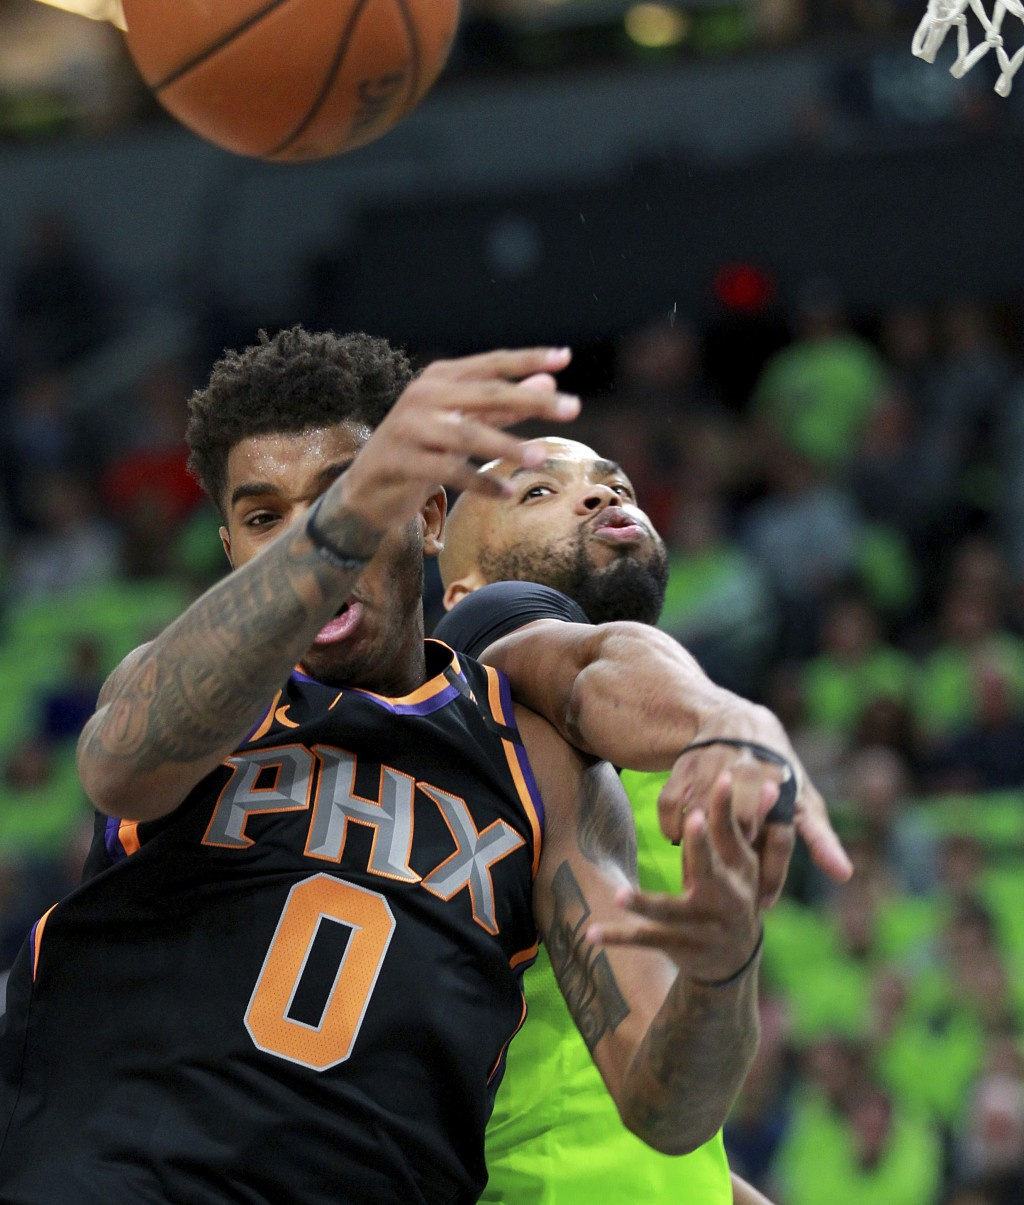 Phoenix Suns forward Marquese Chriss (0) and Minnesota Timberwolves center Taj Gibson (67) fight for a rebound in the first quarter of an NBA basketba...